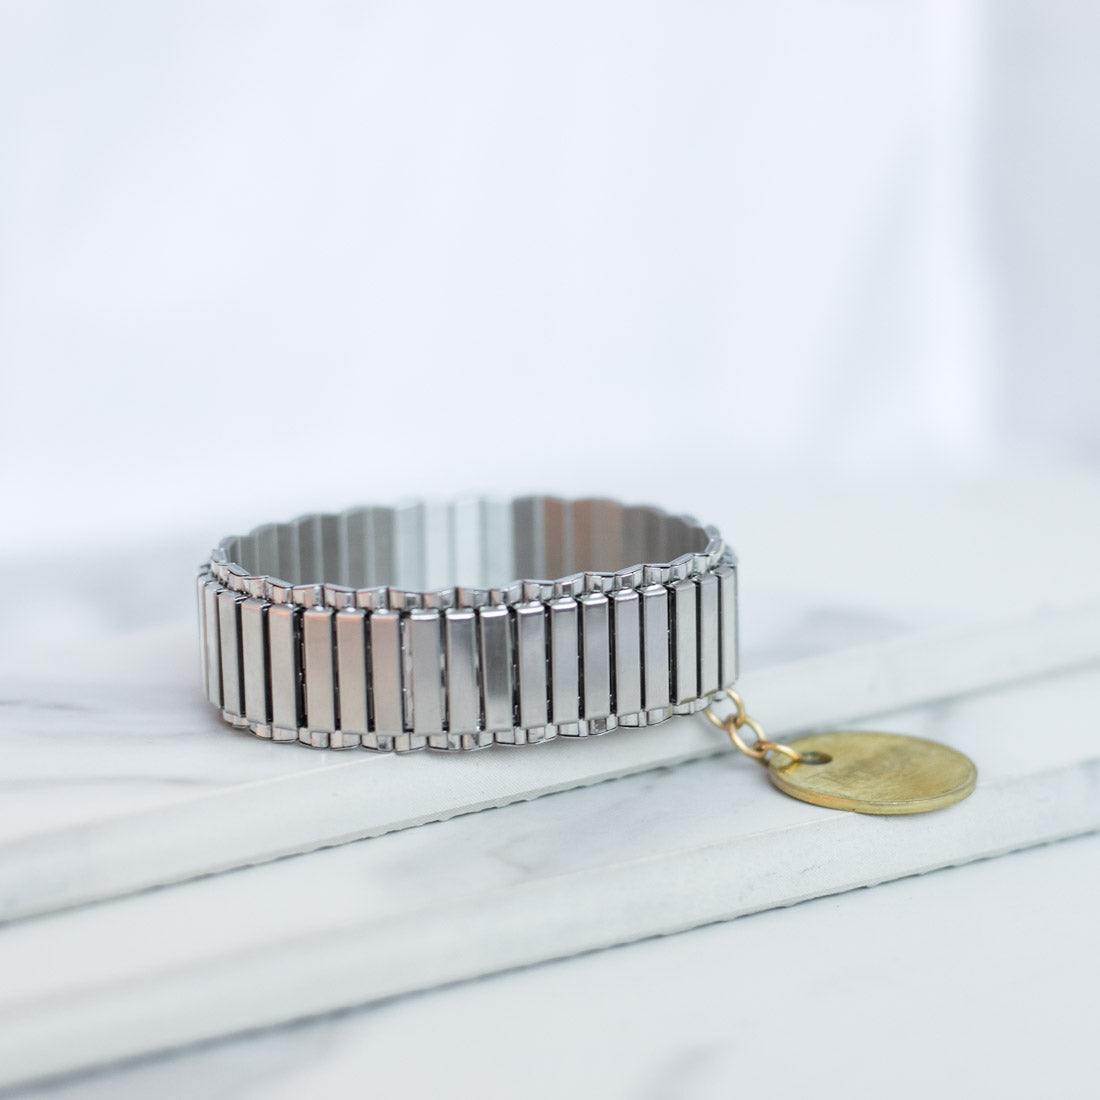 Twisted Silver Jewelry - Watchband Bracelet